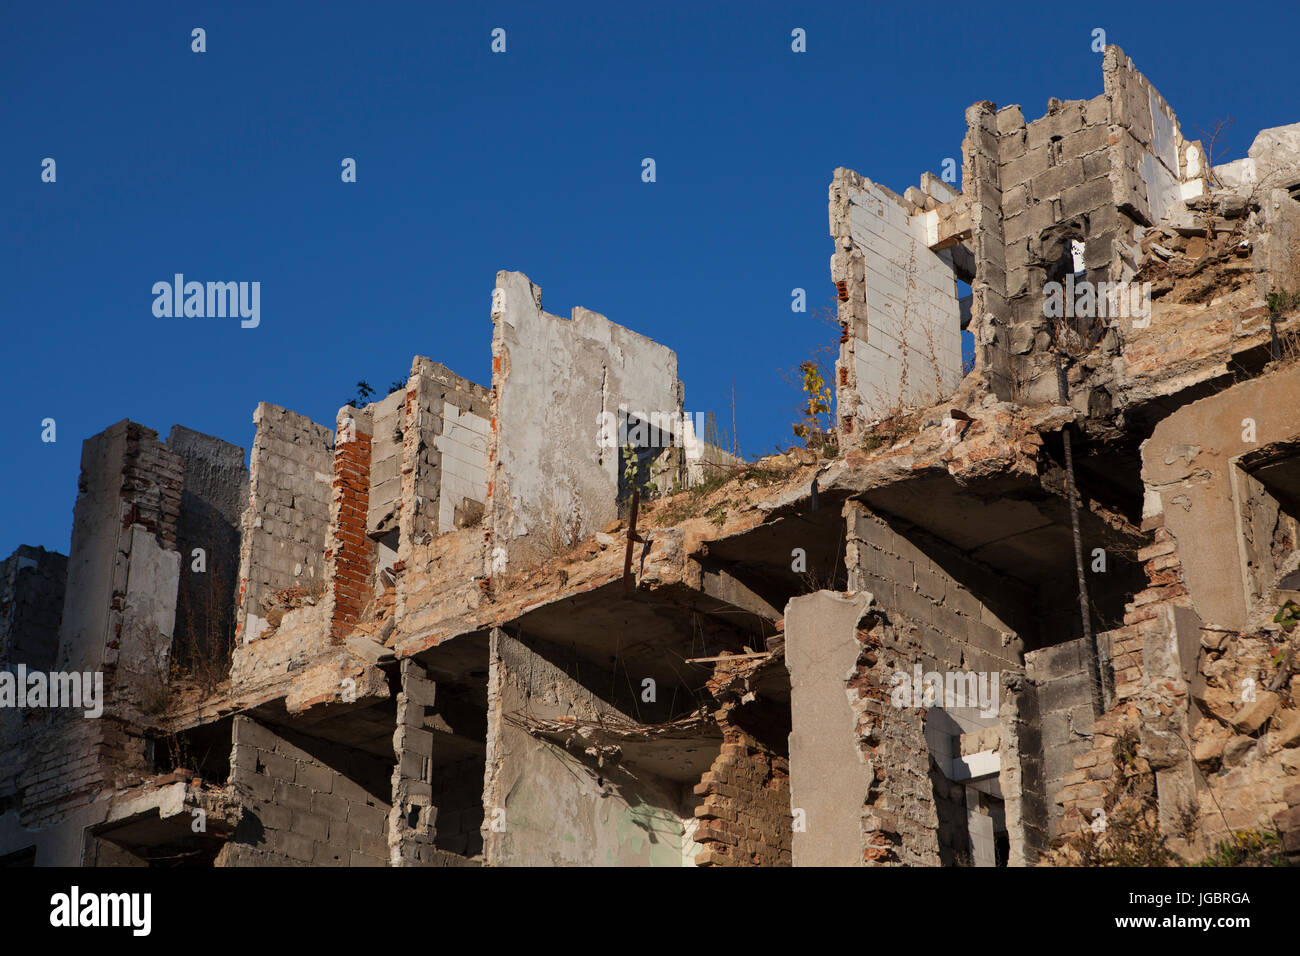 Buildings destroyed by war, Bosnia. - Stock Image